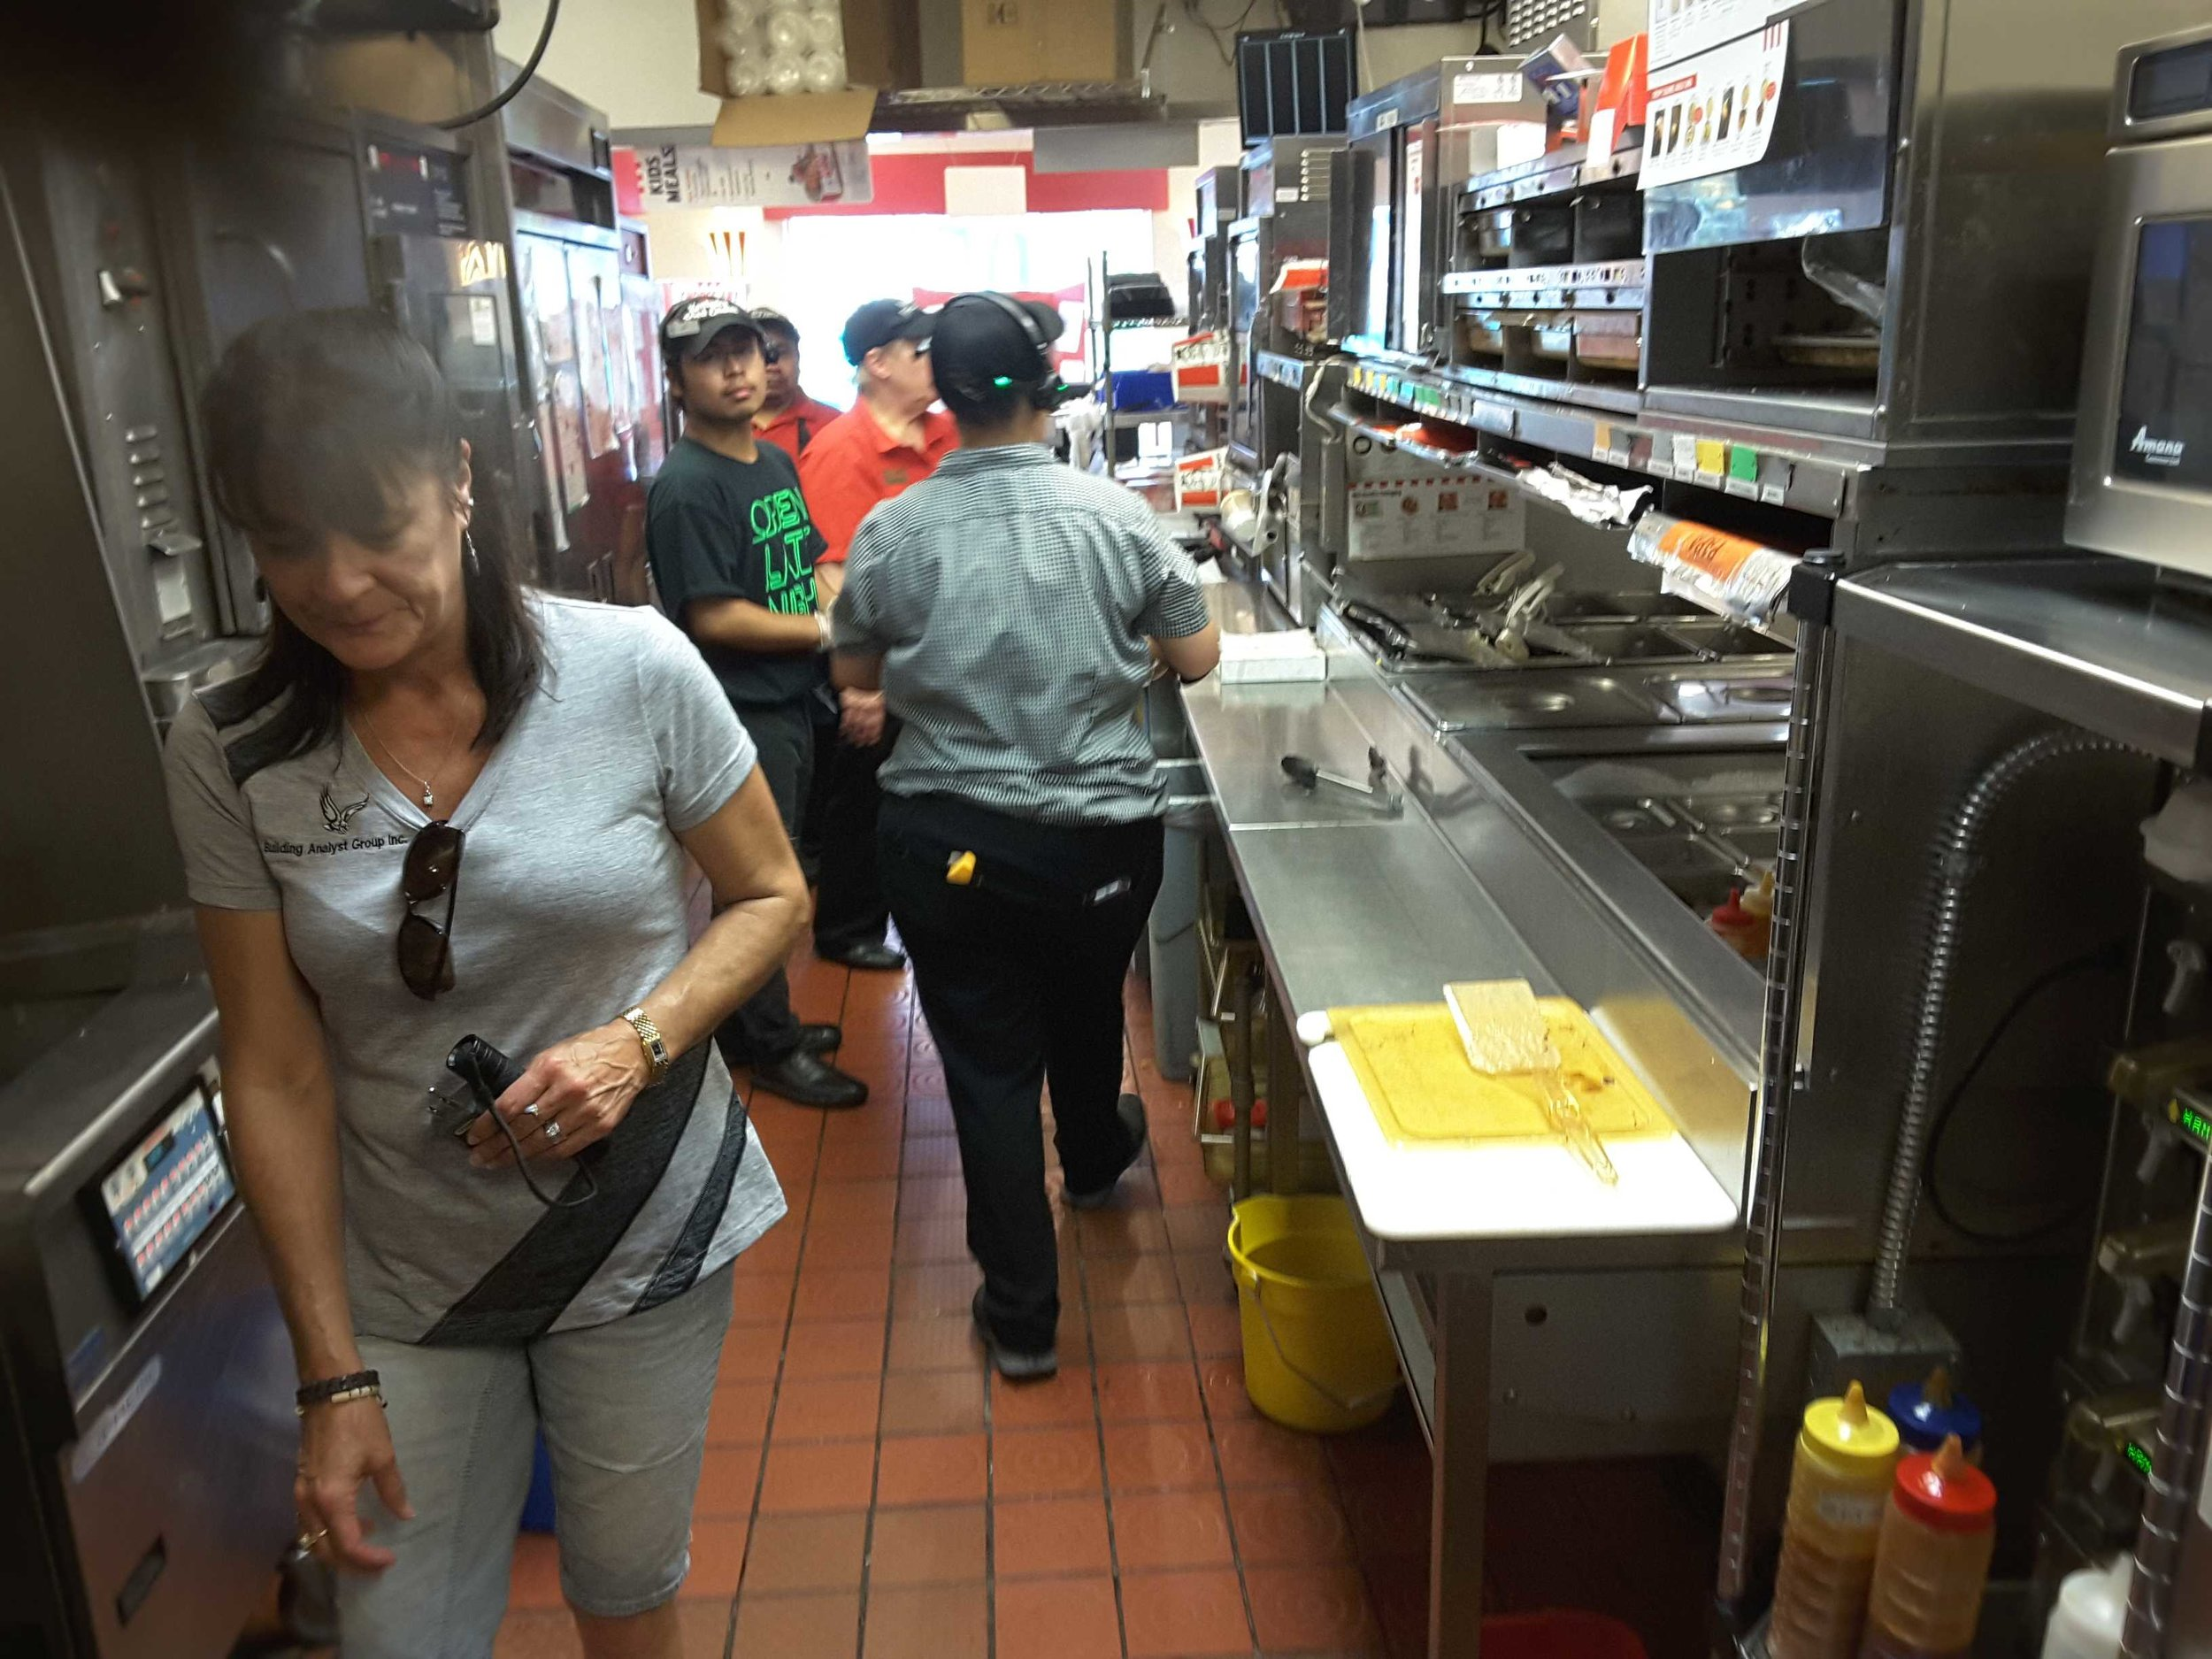 Commercial Kitchen Inspections -